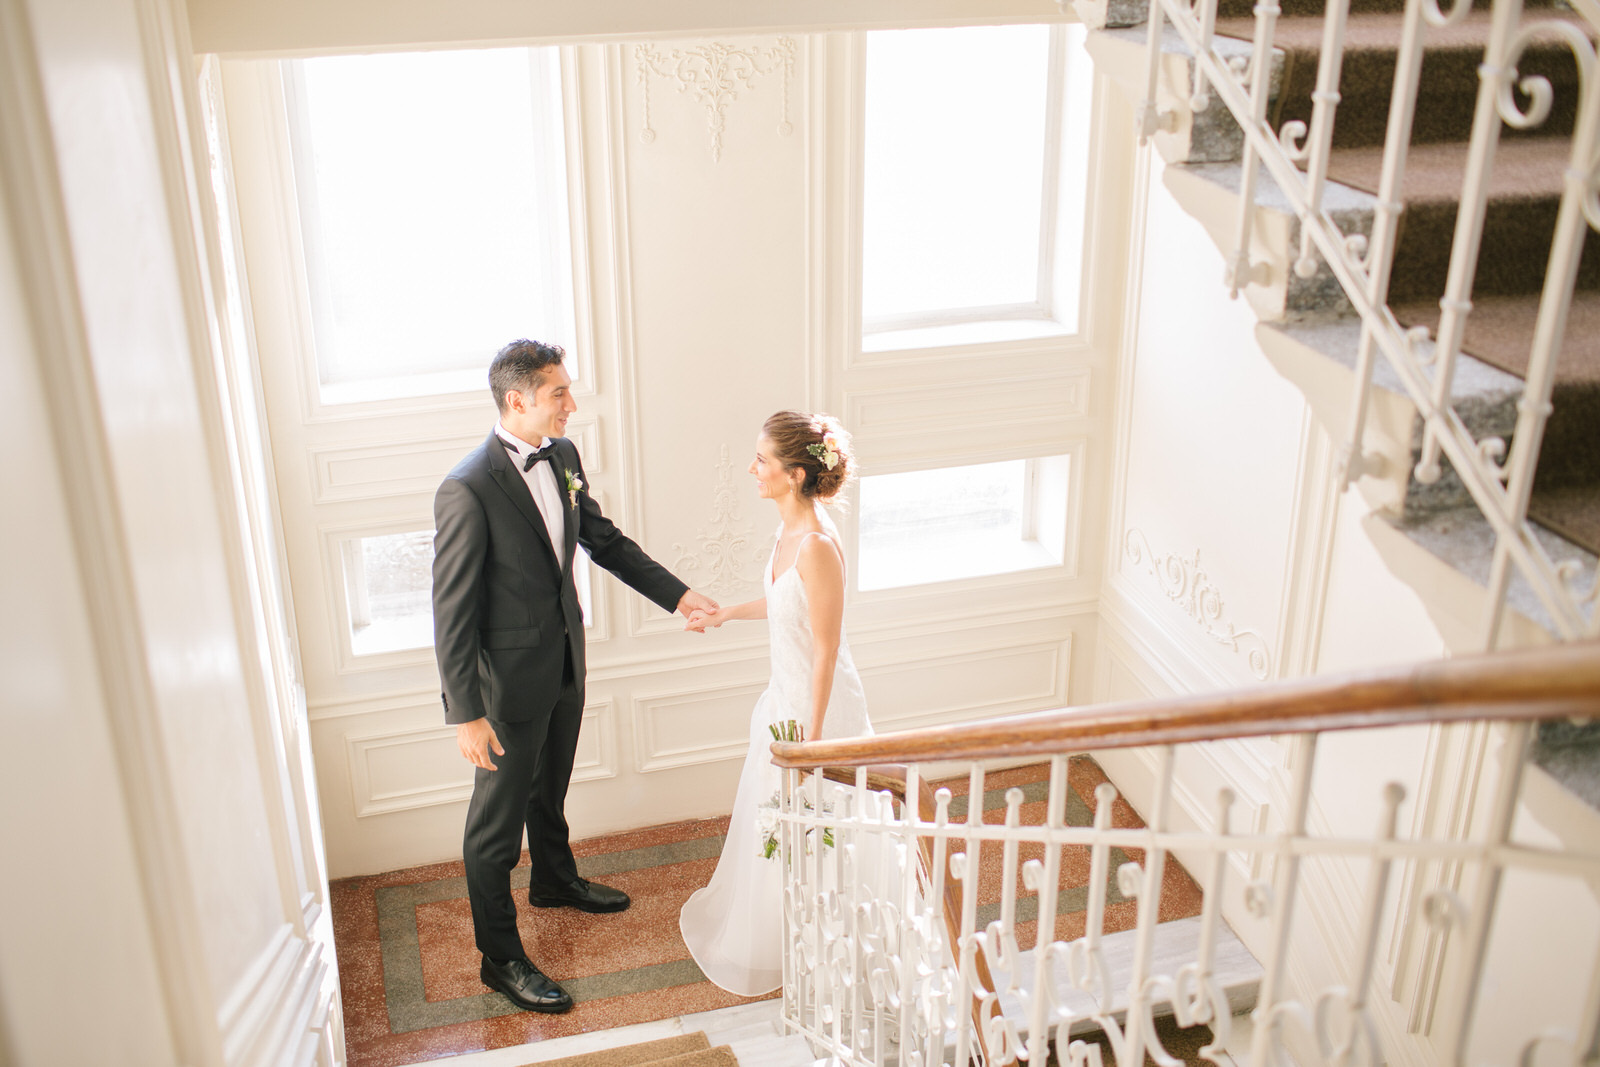 Wedding_Istanbul_House_Hotel_Photography_Fidan_Kandemir